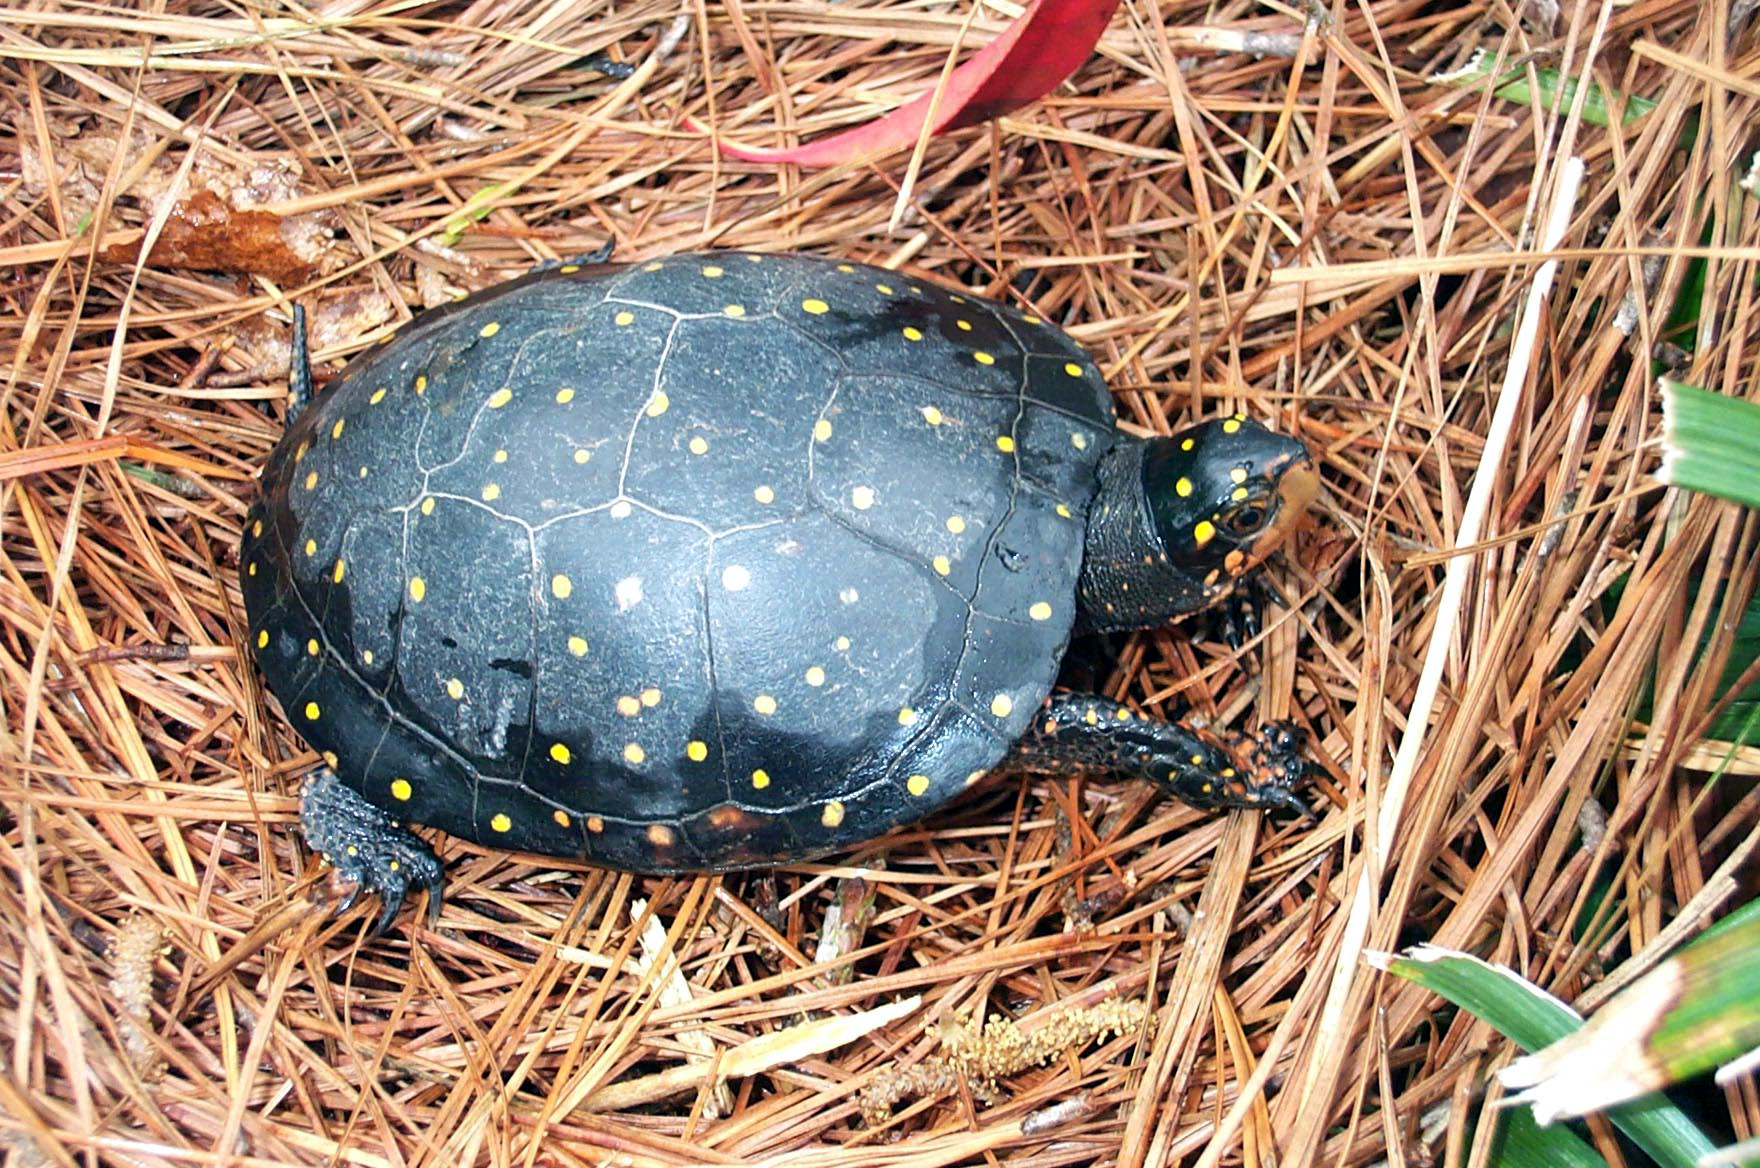 Recommended Best Management Practices for the Spotted Turtle on Department of Defense Installations